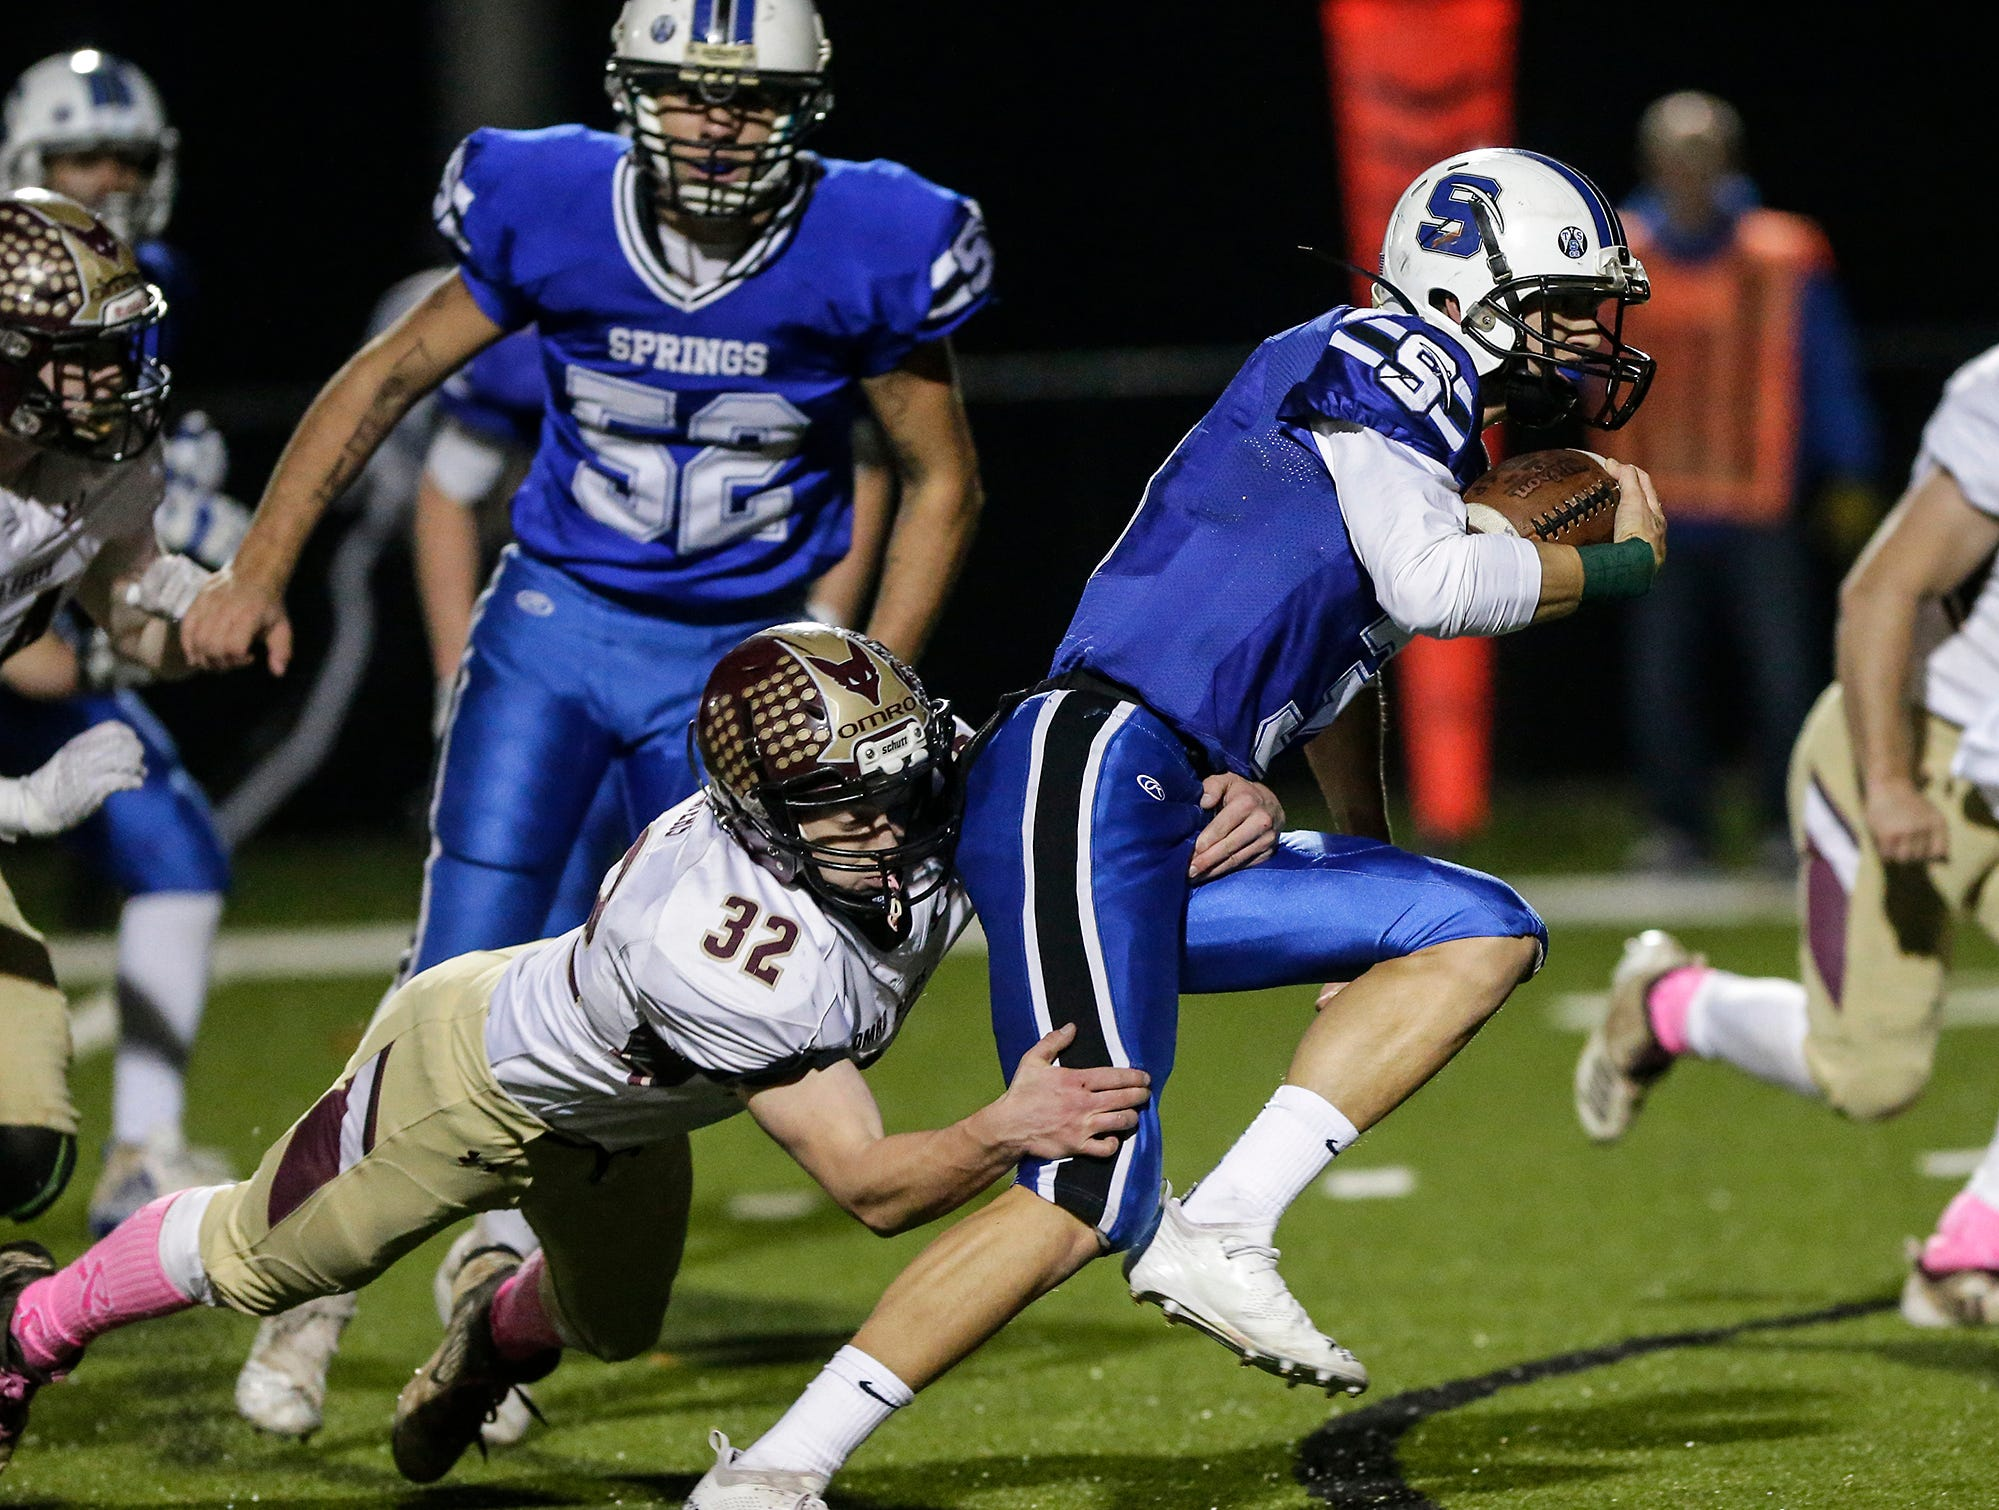 St. Mary's Springs Academy football's Mitchell Waechter breaks this tackle from Omro High School's Thomas Soda-Waters Friday, October 26, 2018 during their WIAA division five, level 2 playoff game played in Lomira, Wisconsin. Springs won the match-up 33-20. Doug Raflik/USA TODAY NETWORK-Wisconsin